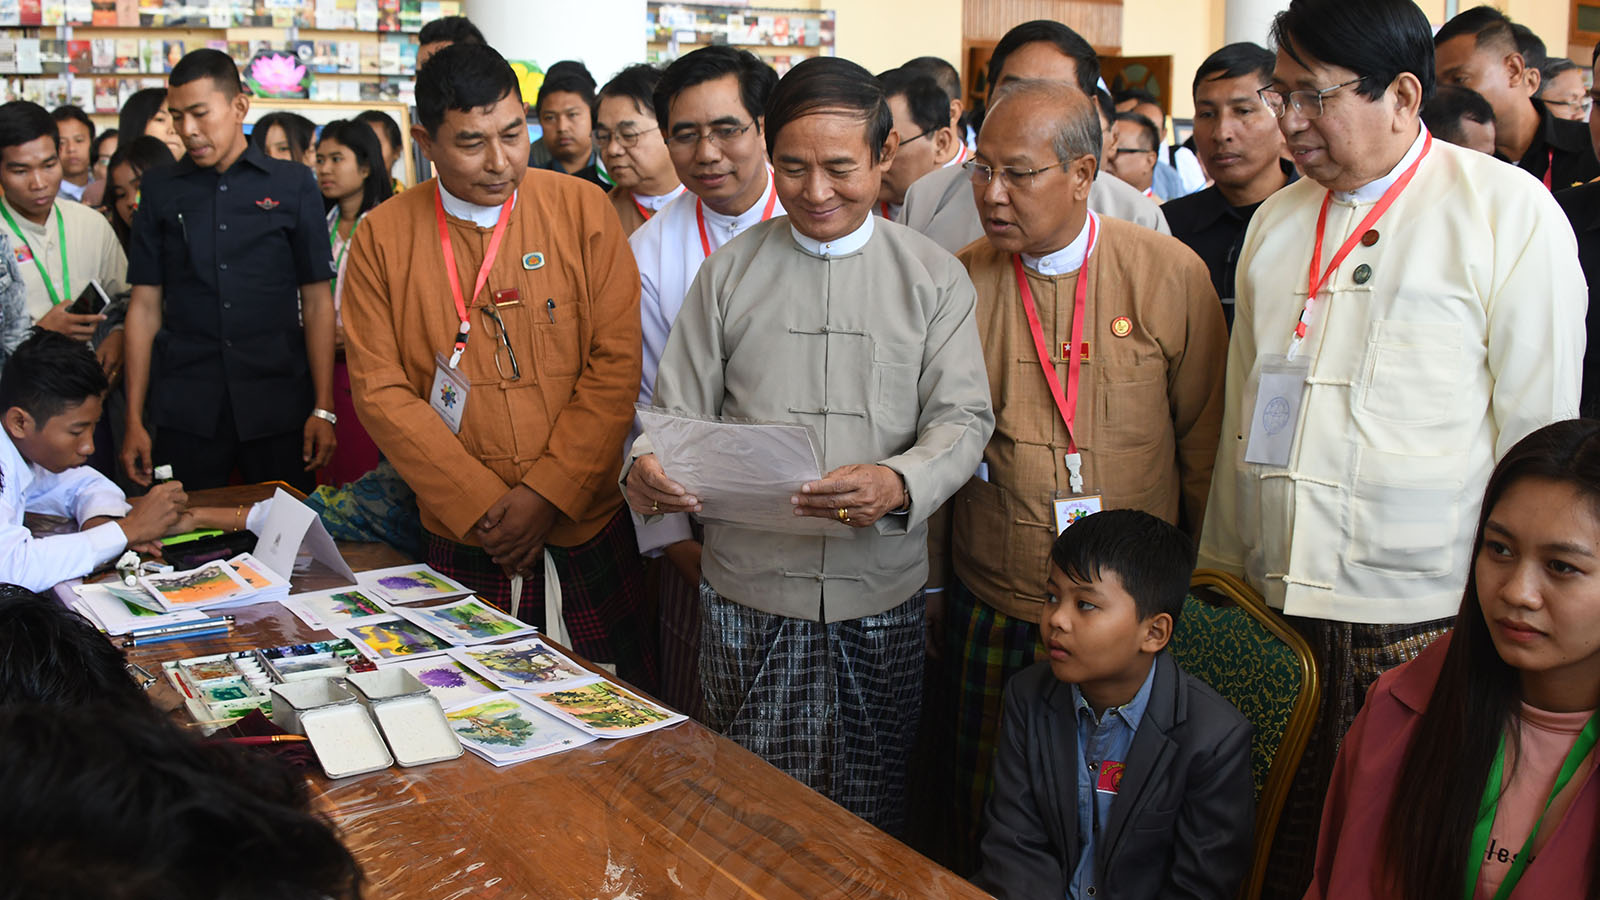 President U Win Myint looks at the drawing and painting created by students at the Youth All-Round Development Festival at Magway University in Magway Photo:MNA